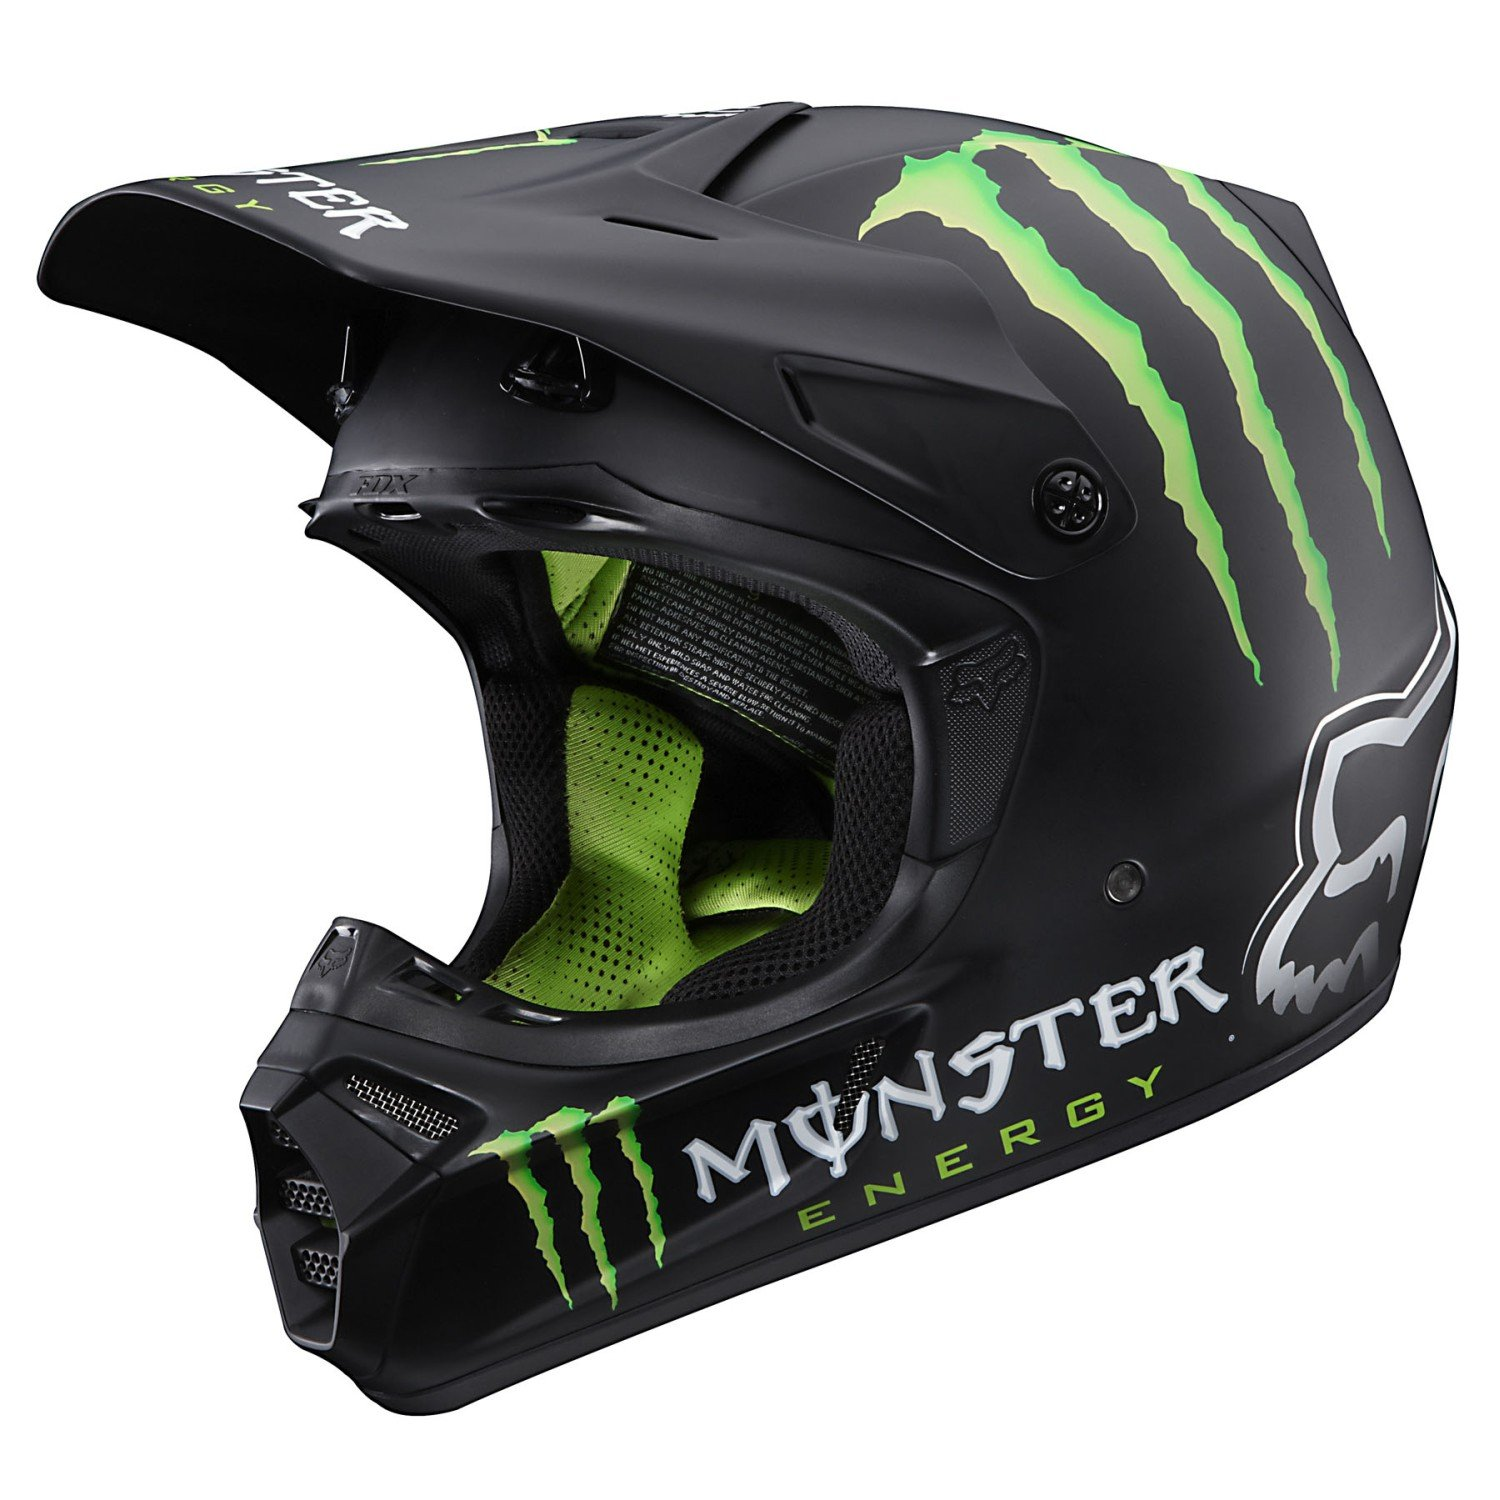 Fox Monster MX Helmet V3 RC Replica - Black Matte - Medium: Amazon.es: Coche y moto